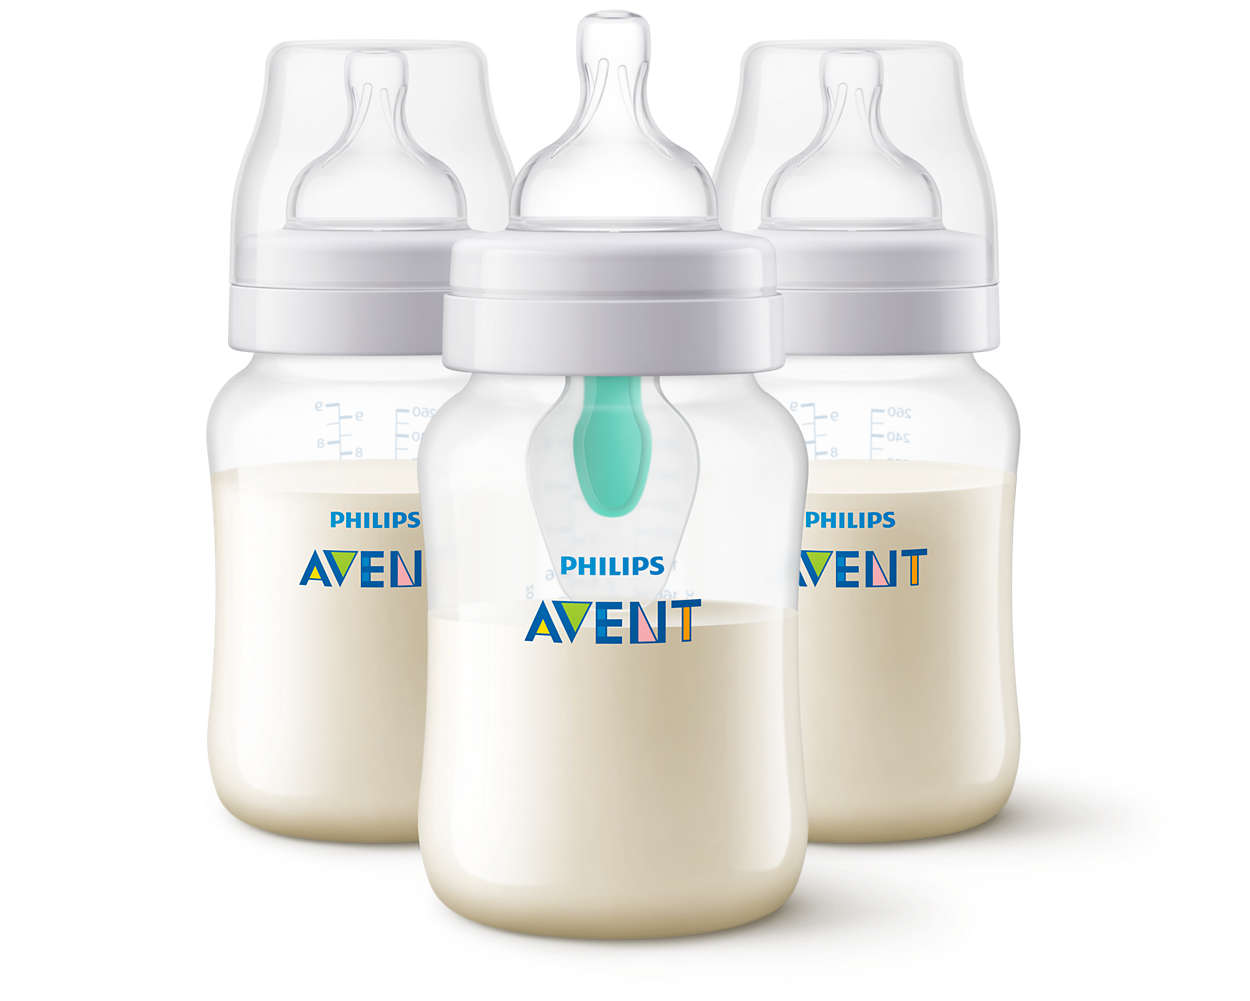 Designed to reduce colic, wind and reflux*